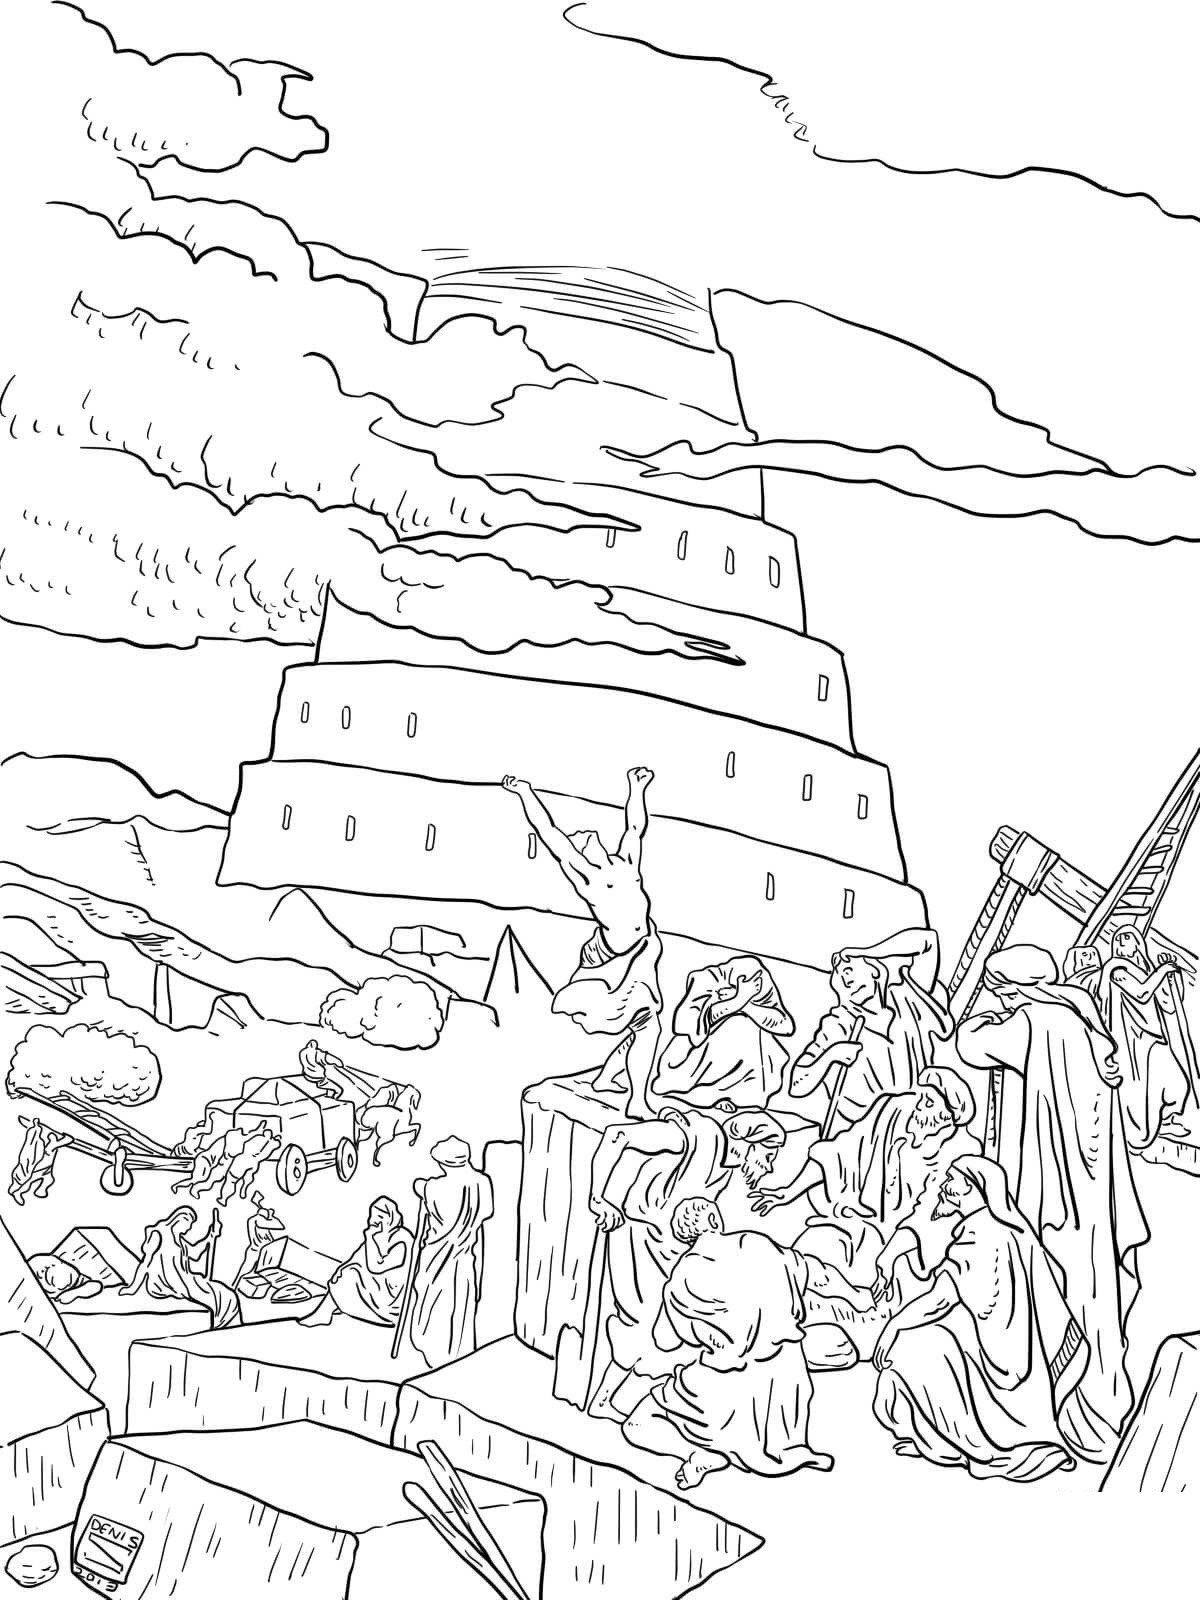 20 Tower Of Babel Coloring Sheet In 2020 Coloring Pages Valentines Day Coloring Page Bunny Coloring Pages